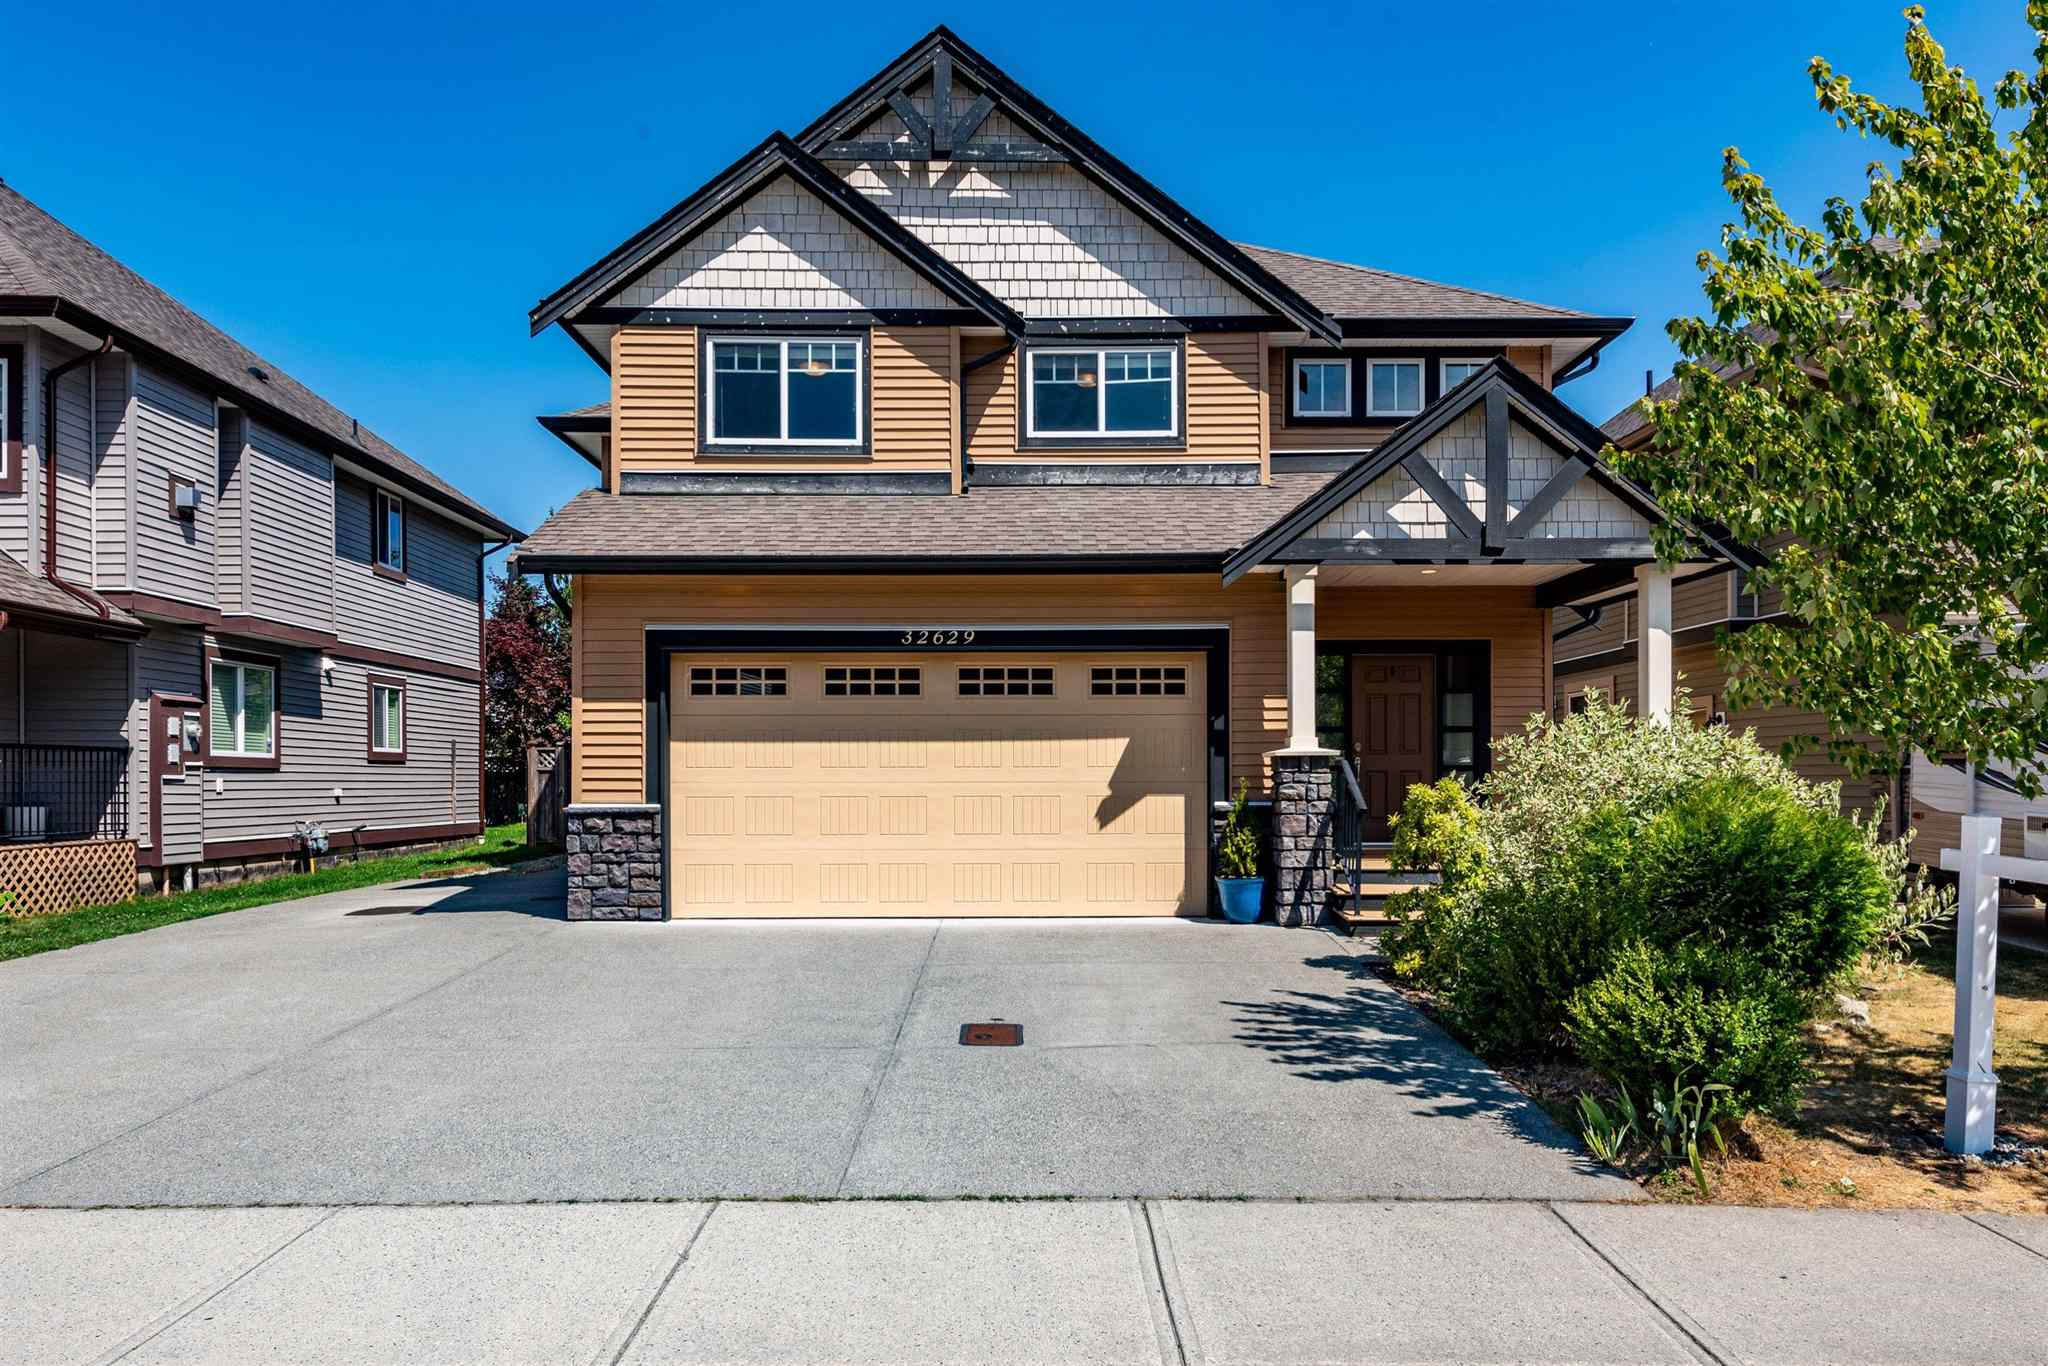 32629 CARTER AVENUE AVENUE - Mission BC House/Single Family for sale, 4 Bedrooms (R2601185) - #1